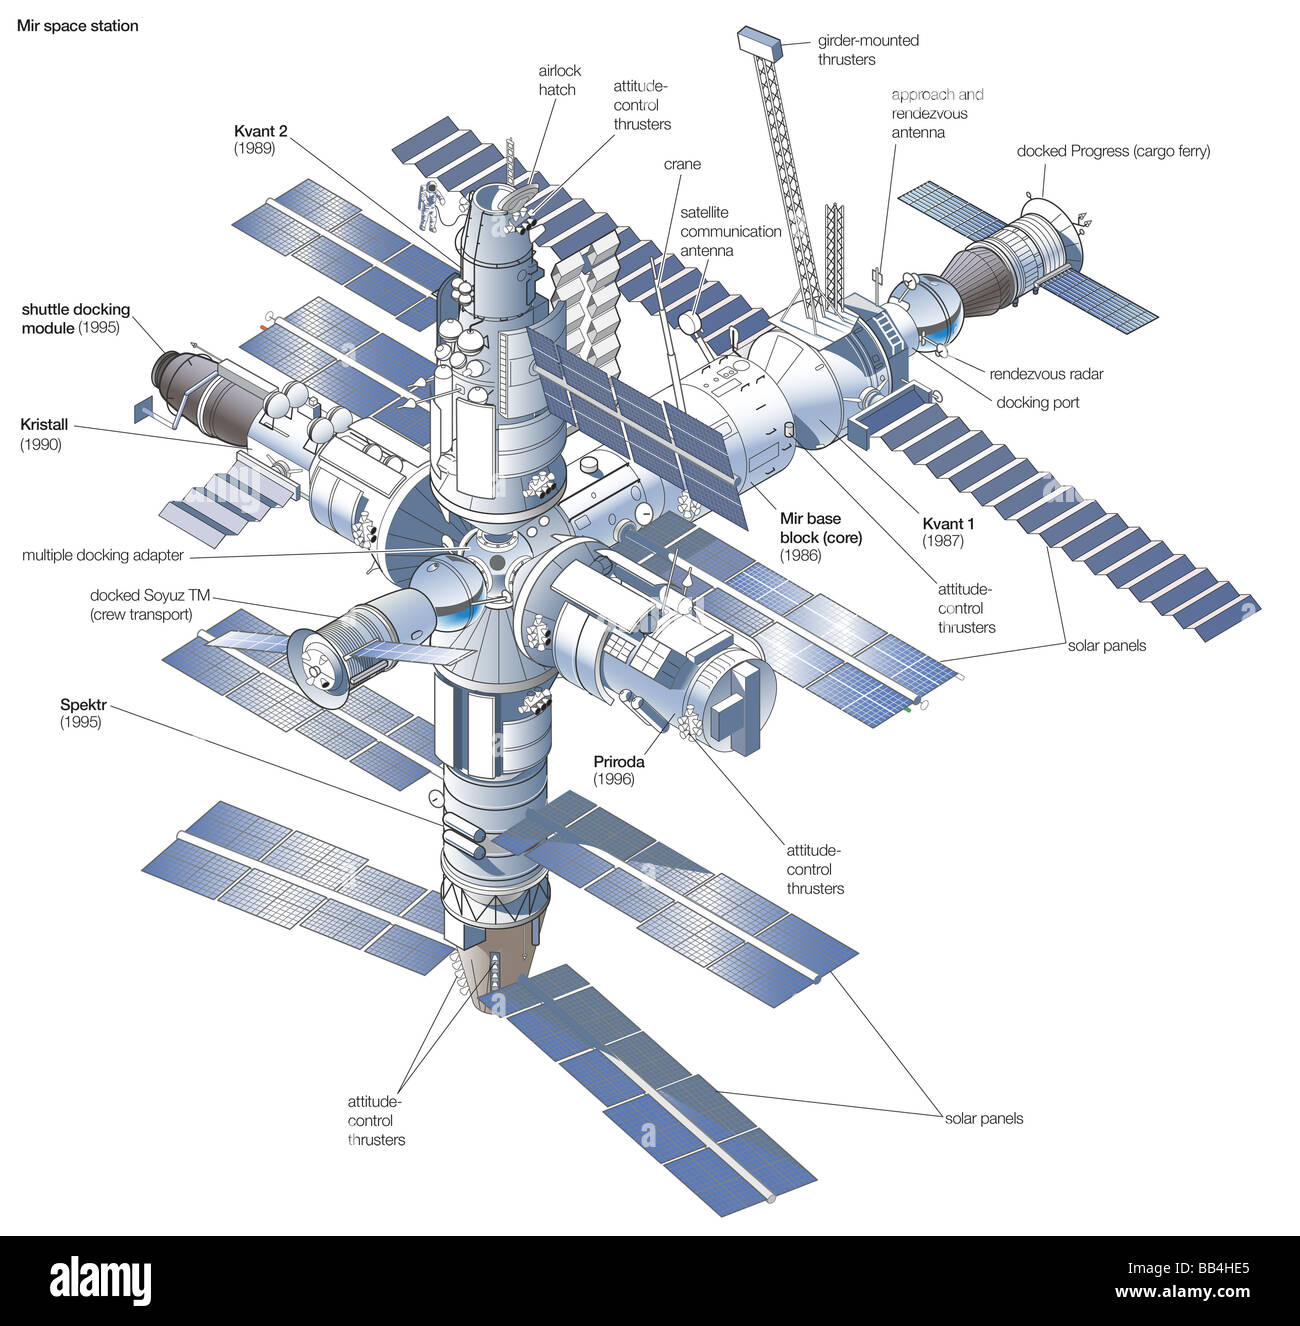 Space station Mir, after its completion in 1996, with the launch dates of each modular component shown. - Stock Image